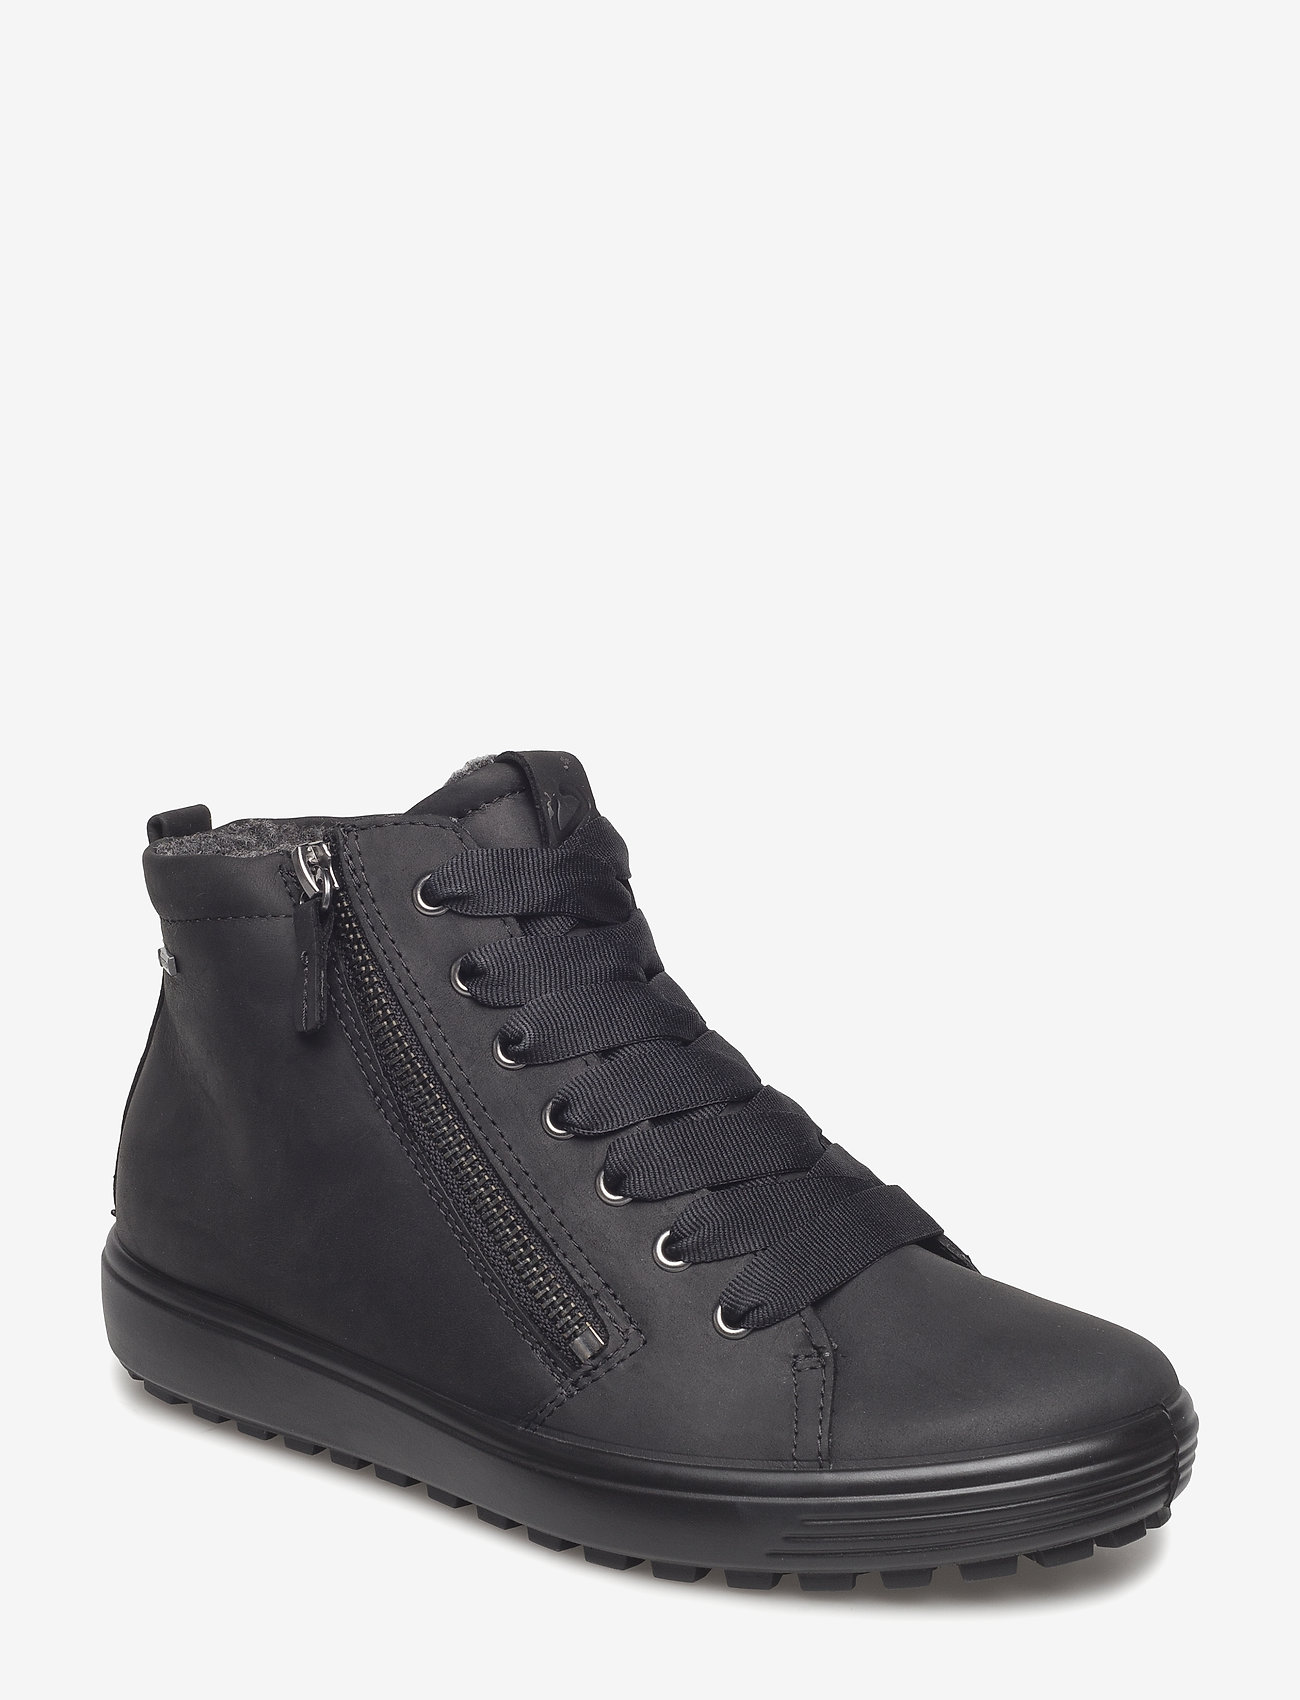 ECCO - SOFT 7 TRED W - flat ankle boots - black - 1